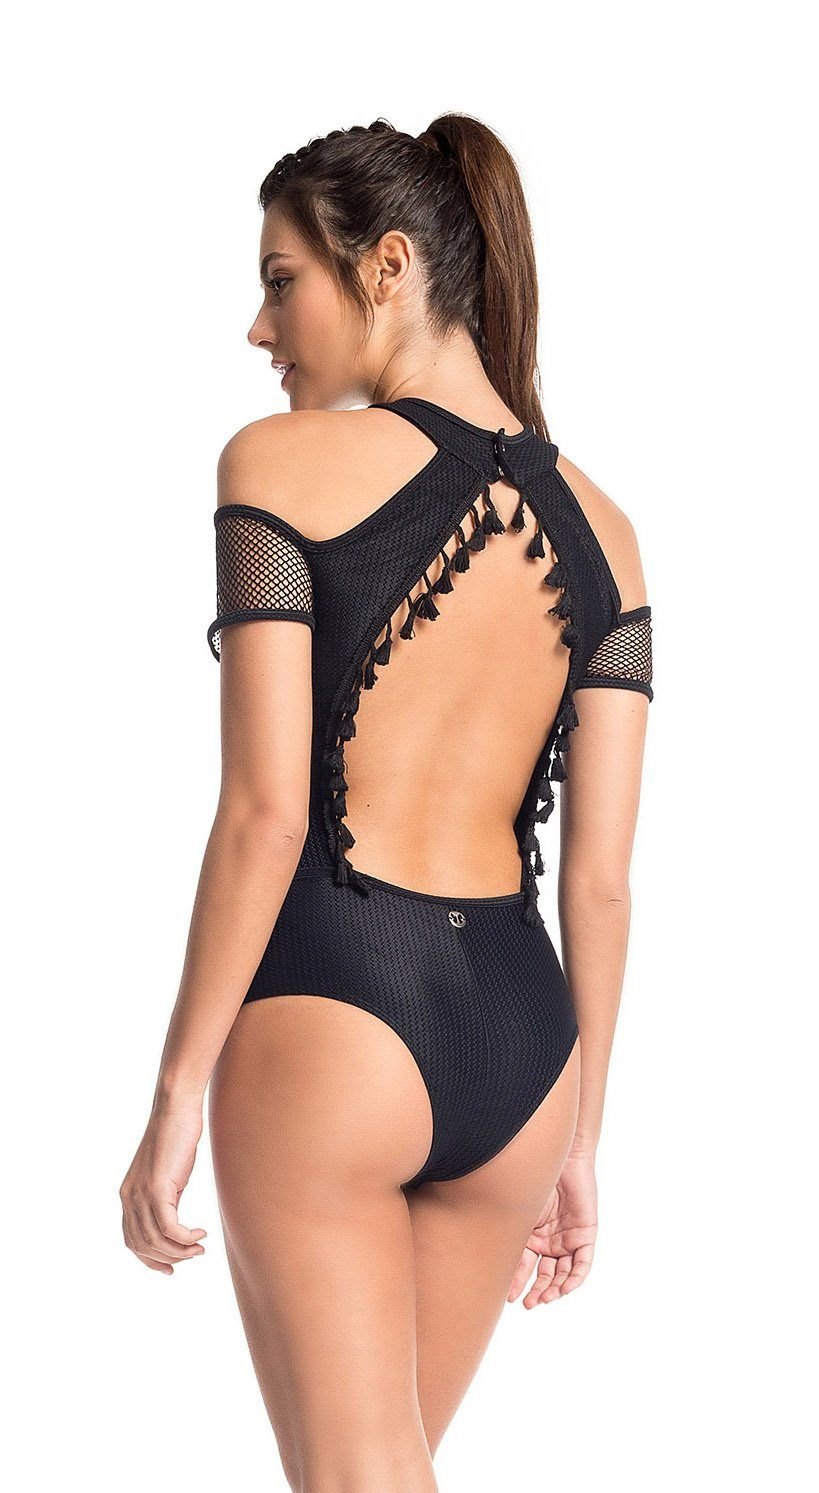 Workout Bodysuit - Body Vision Black